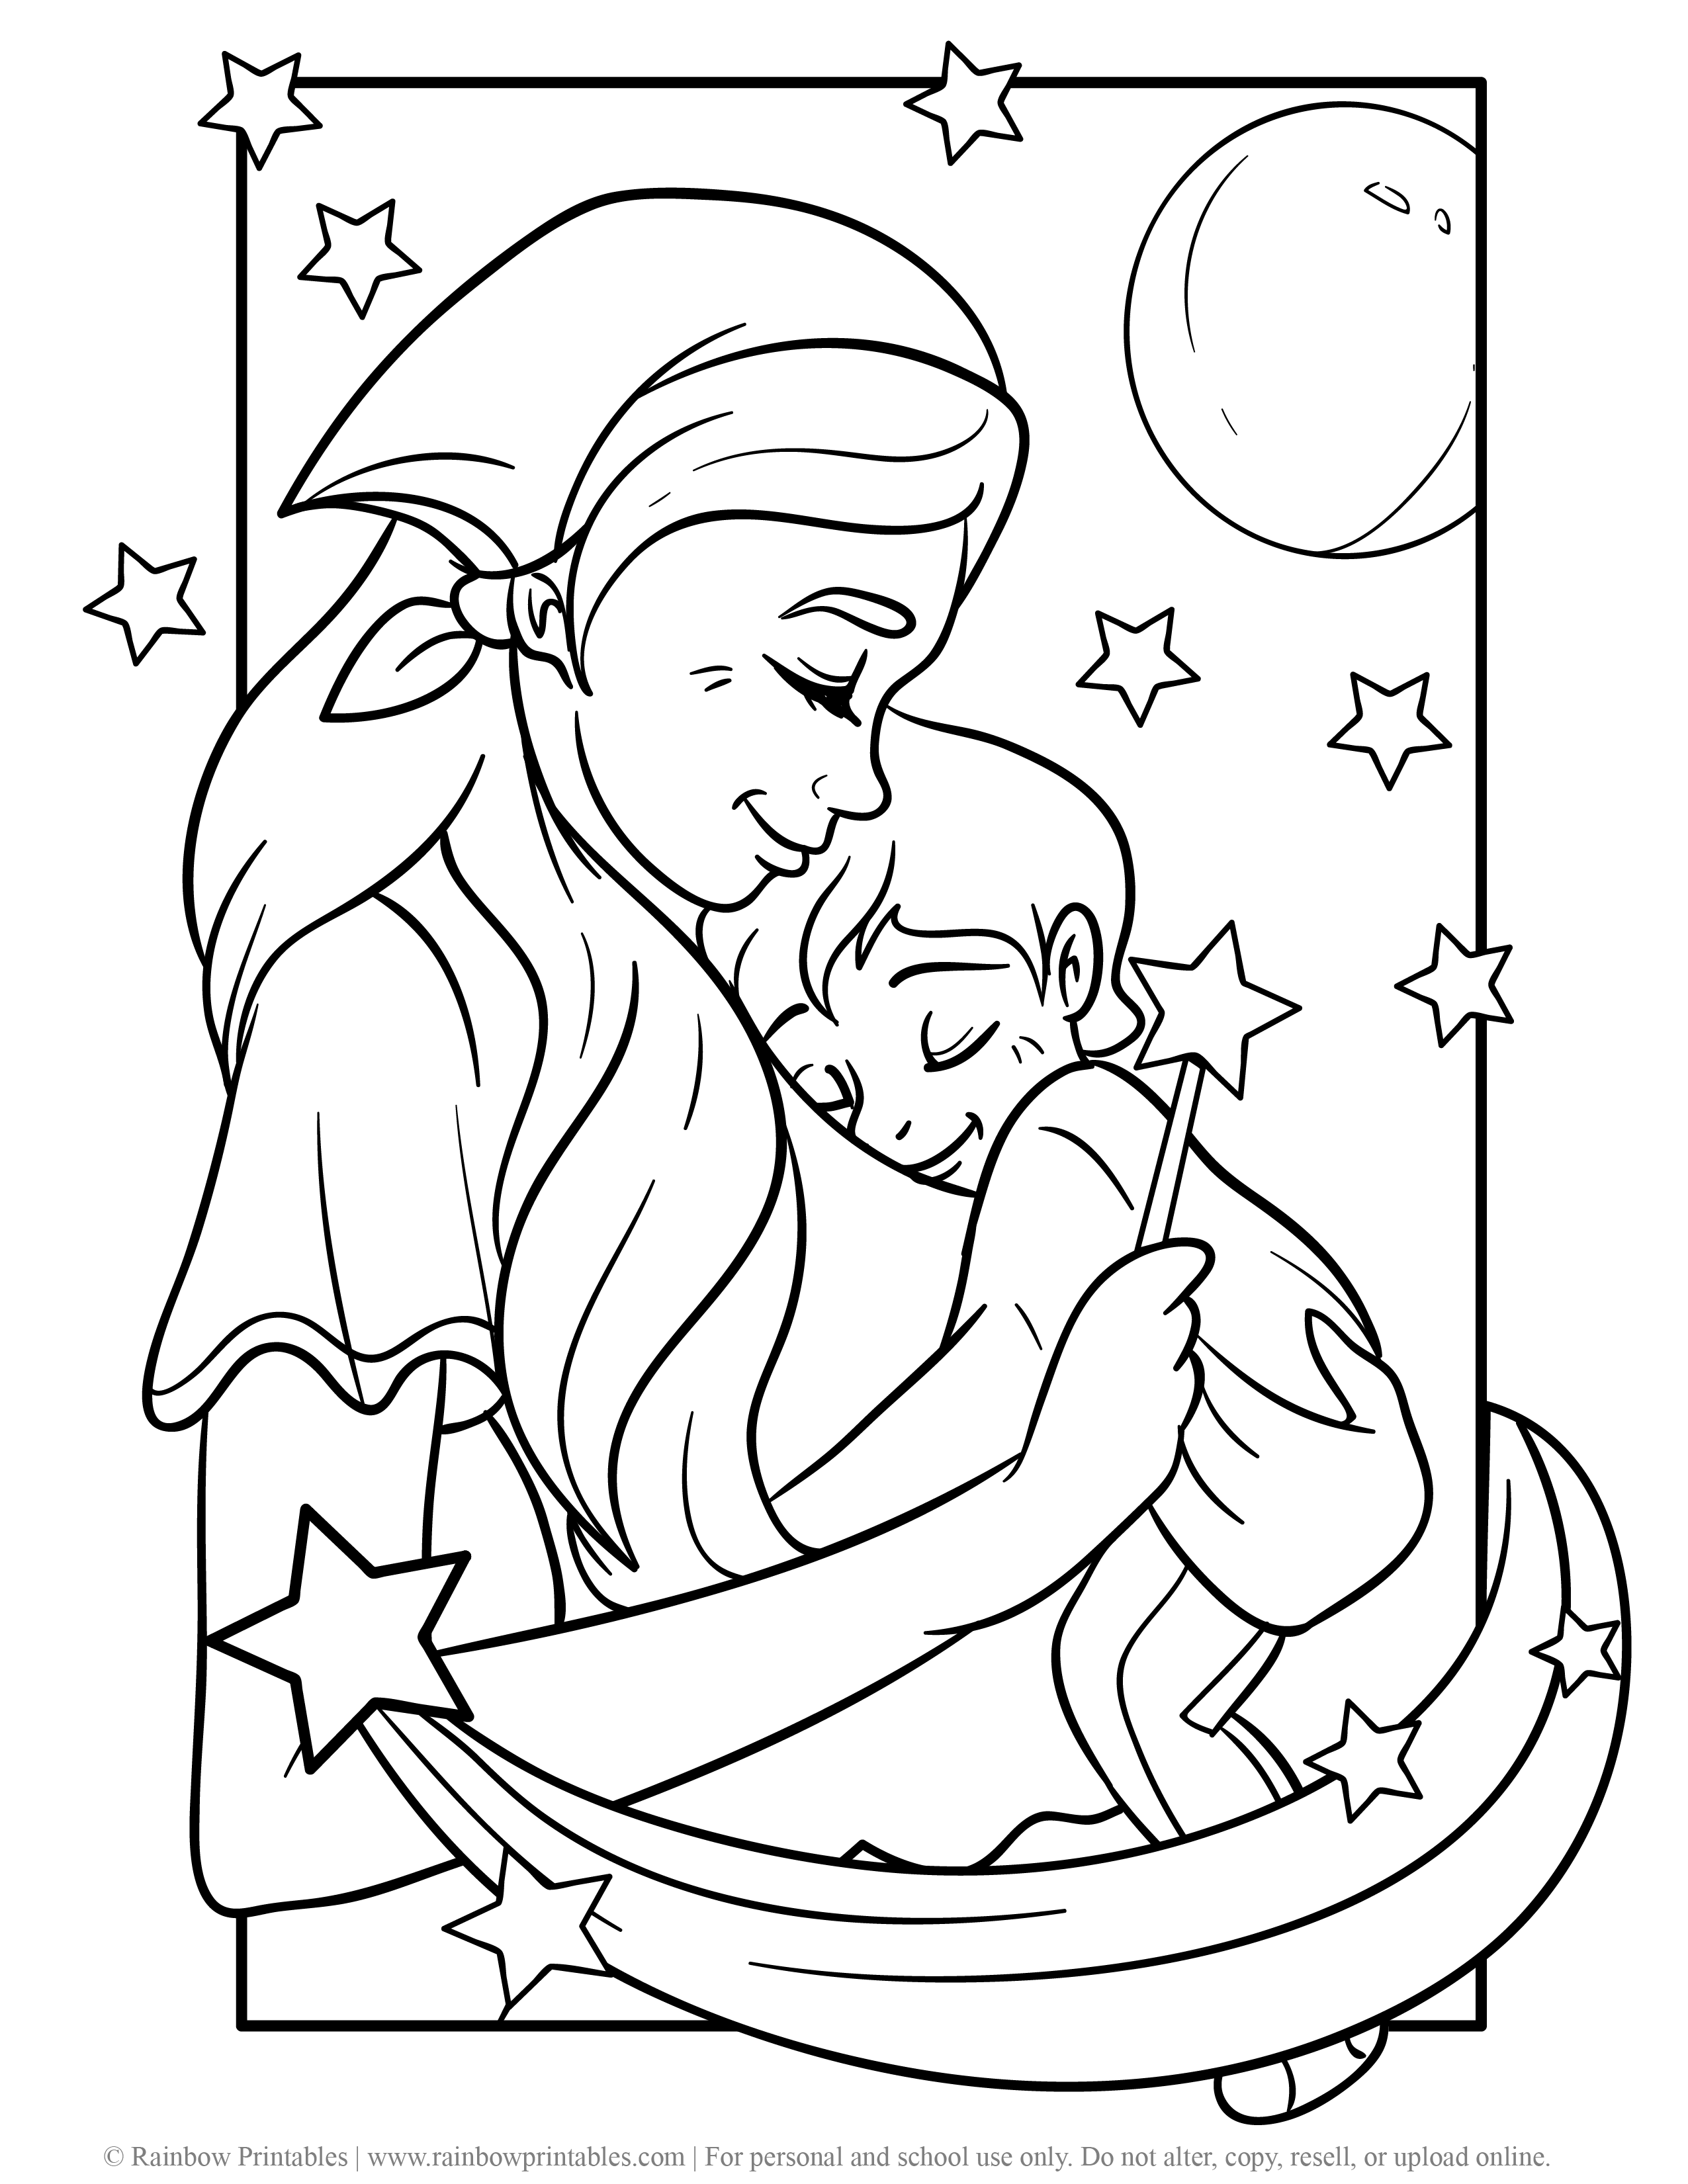 Free Coloring Pages for Kids Drawing Activities Line Art Illustration MOM WITH BABY GIRL BOY SLEEPING IN ARMS GOOD NIGHT SWEET